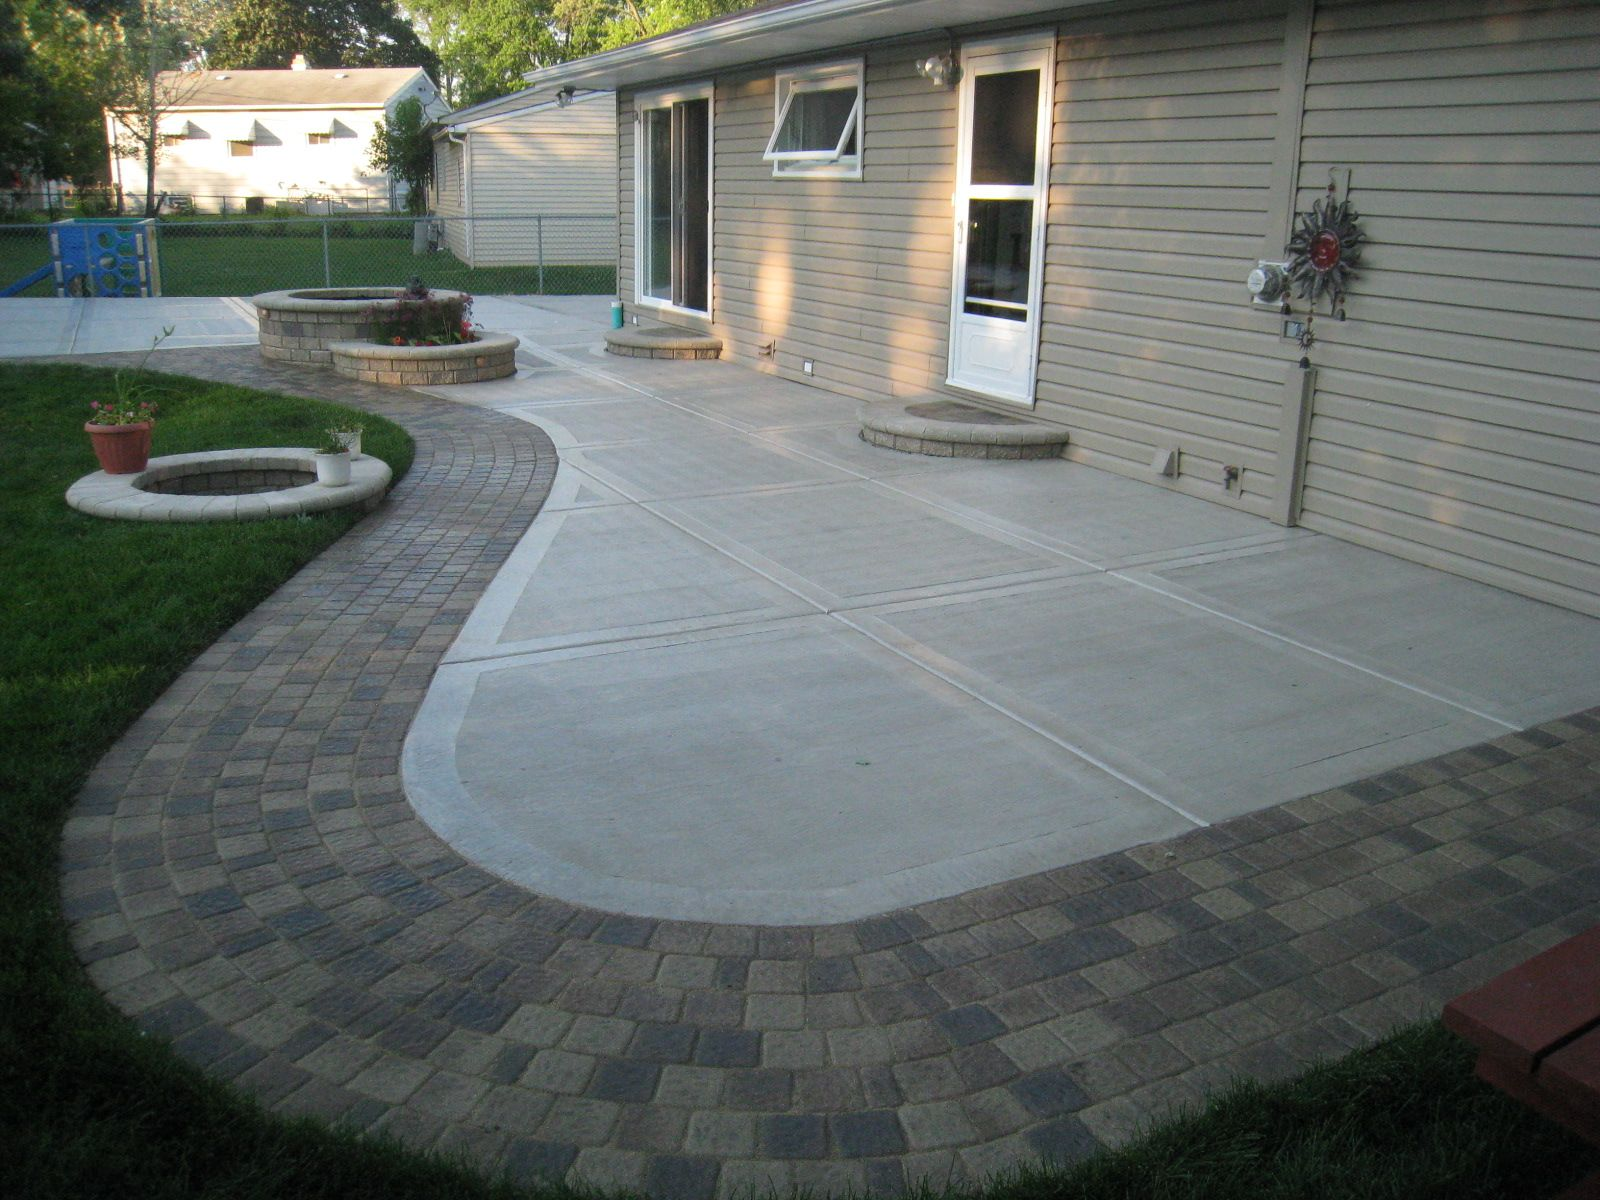 Stone Patio Design Ideas 20 best stone patio ideas for your backyard Concrete Paver Patio Ideas Modern Patio Design Youtube Back Yard Concrete Patio Ideas Concrete Patio California